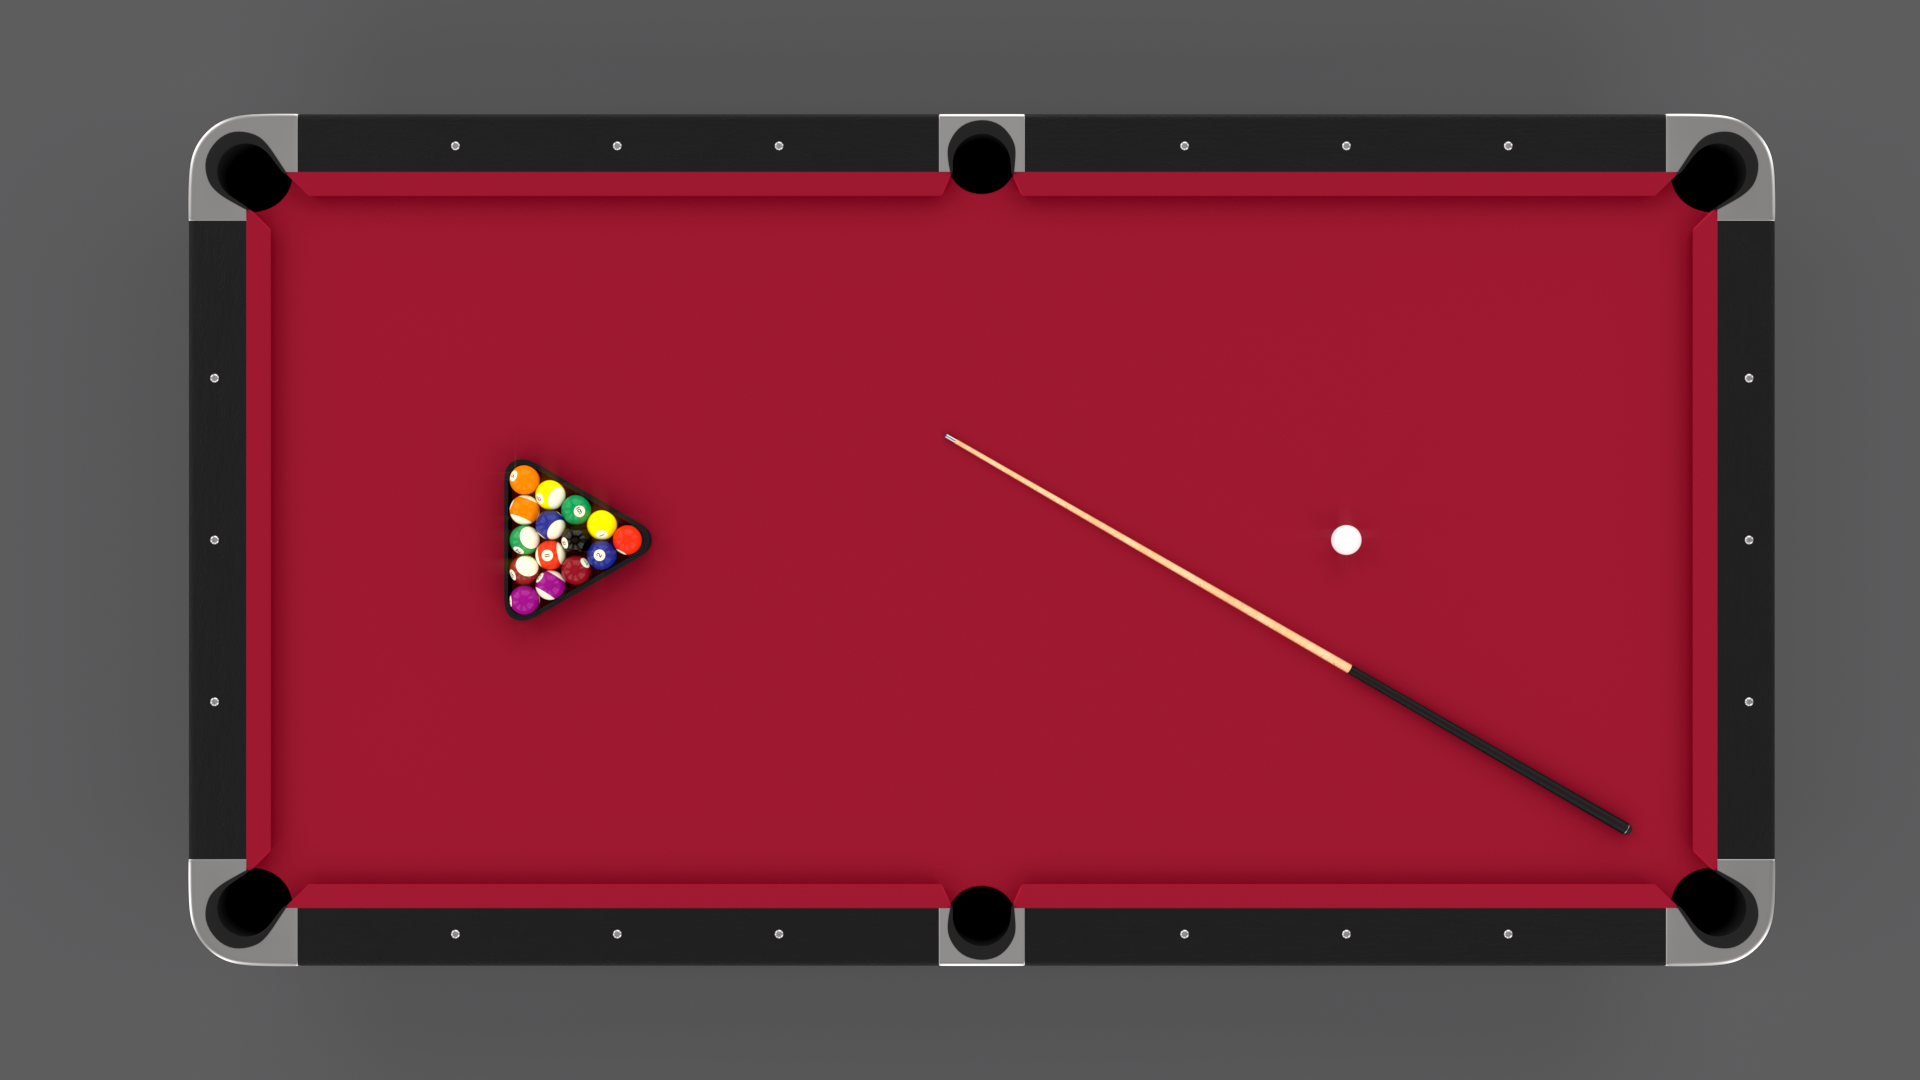 8 Ball Pool Table Red